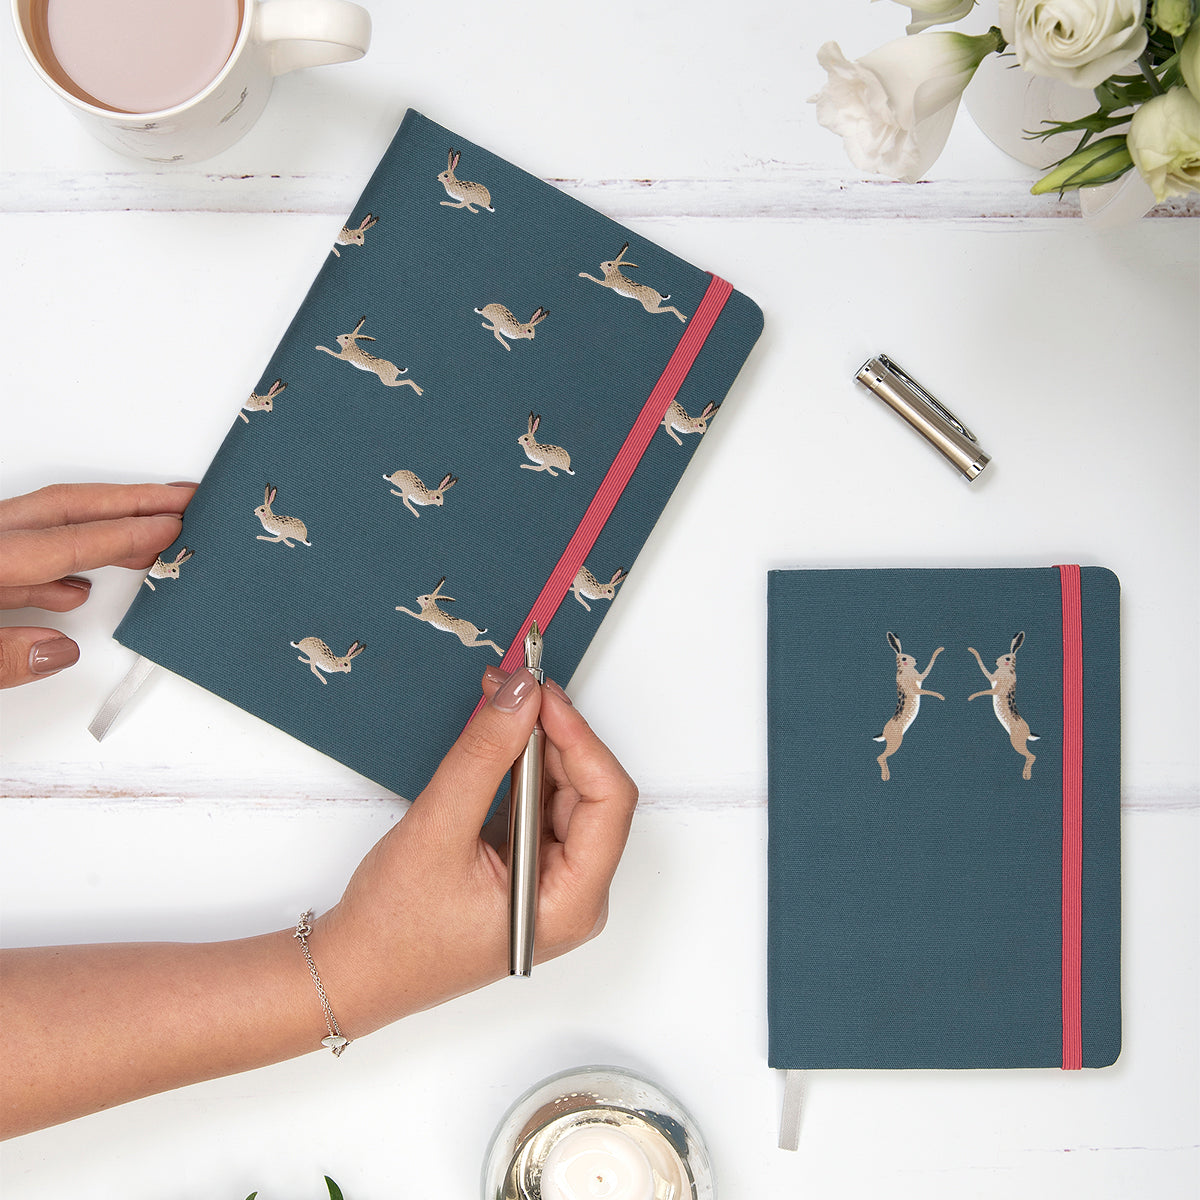 Hare Small Fabric Notebook